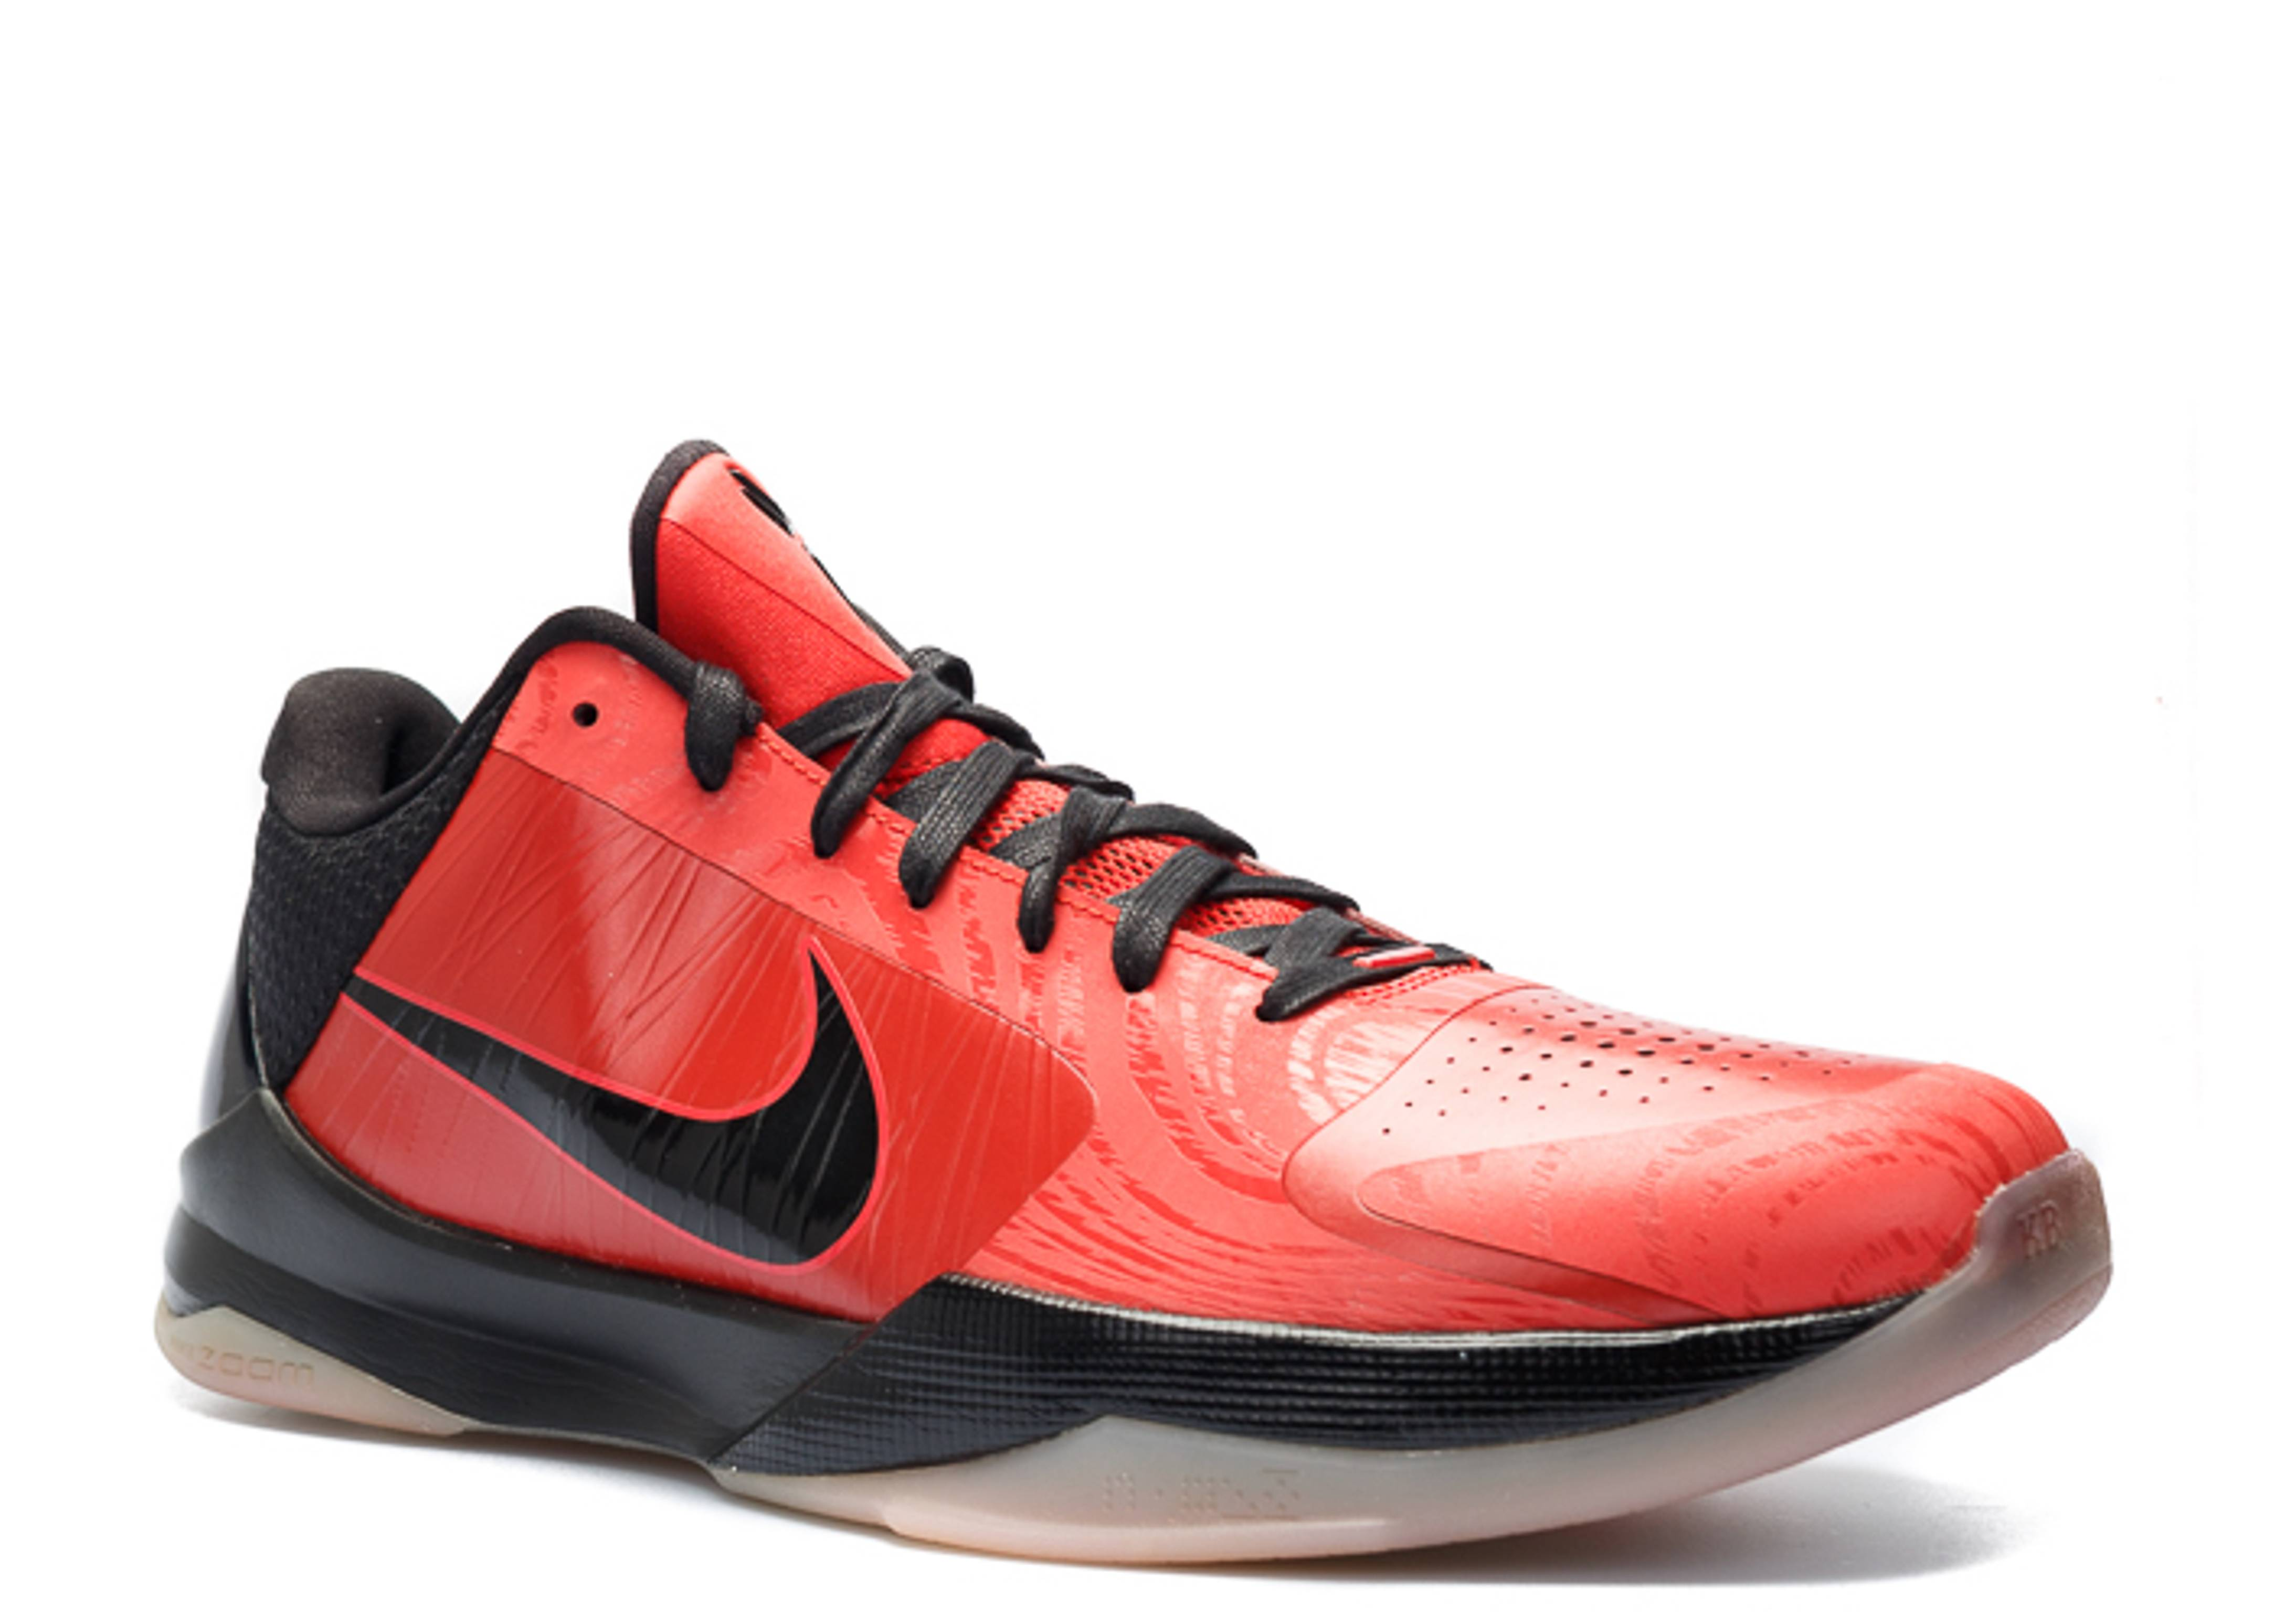 cheap for discount 904b6 c1a7d ... where to buy zoom kobe 5 all star nike 386429 601 daring red black white  flight